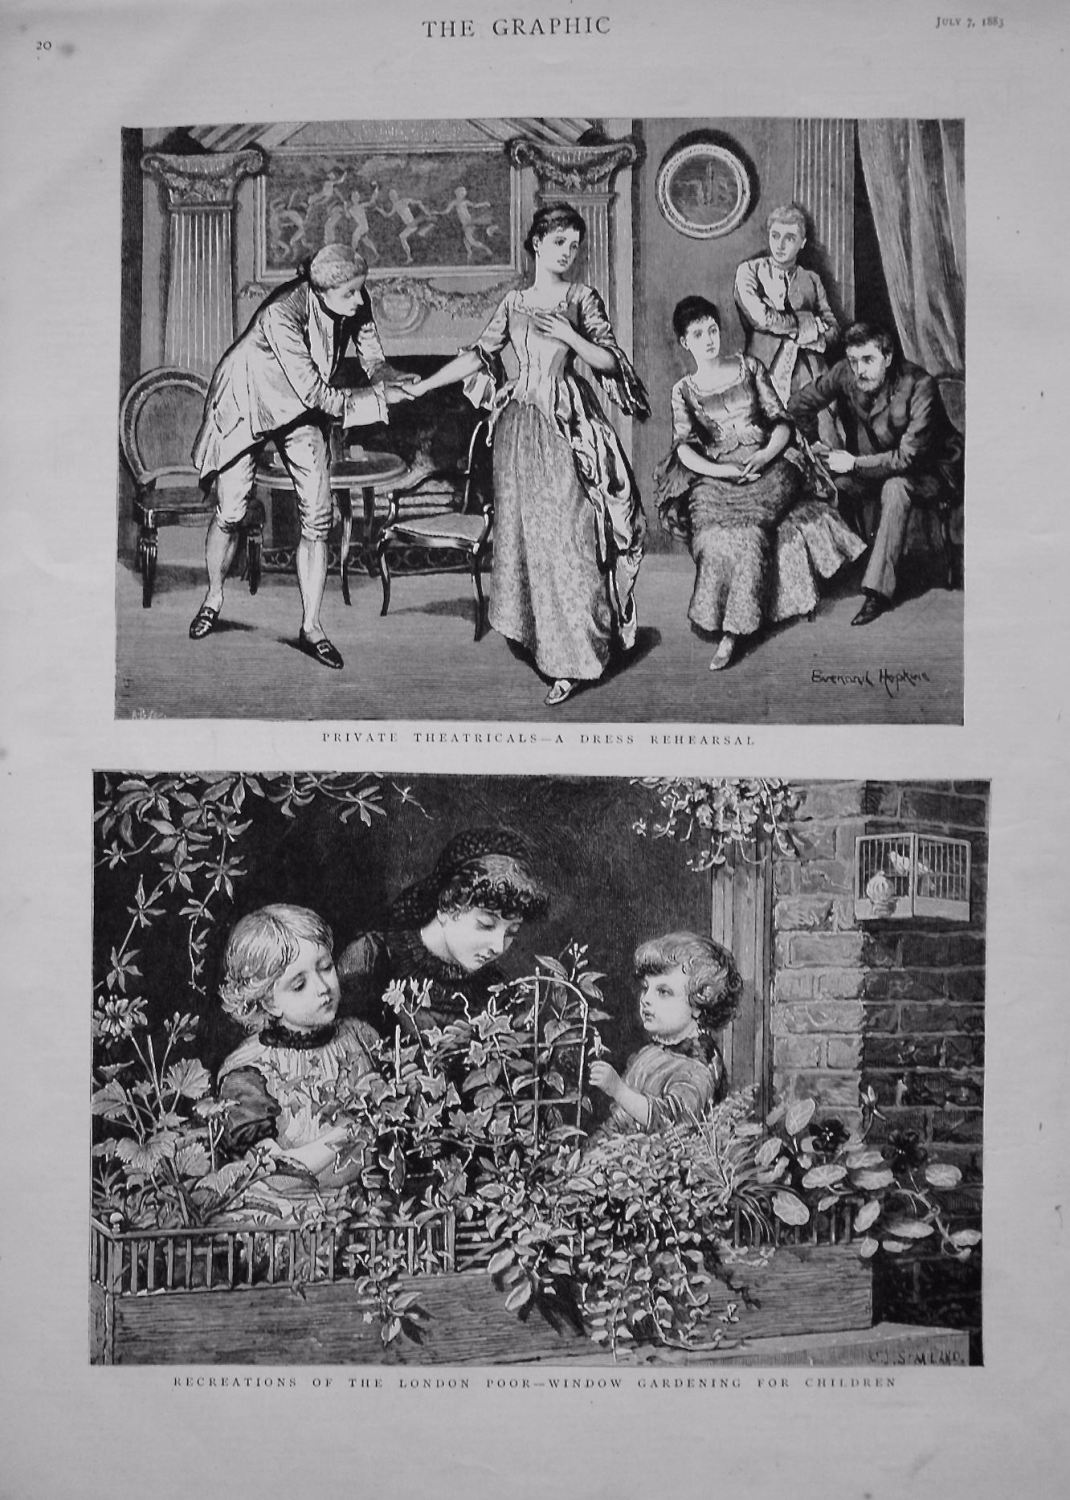 Private Theatricals - A Dress Rehearsal. 1883.